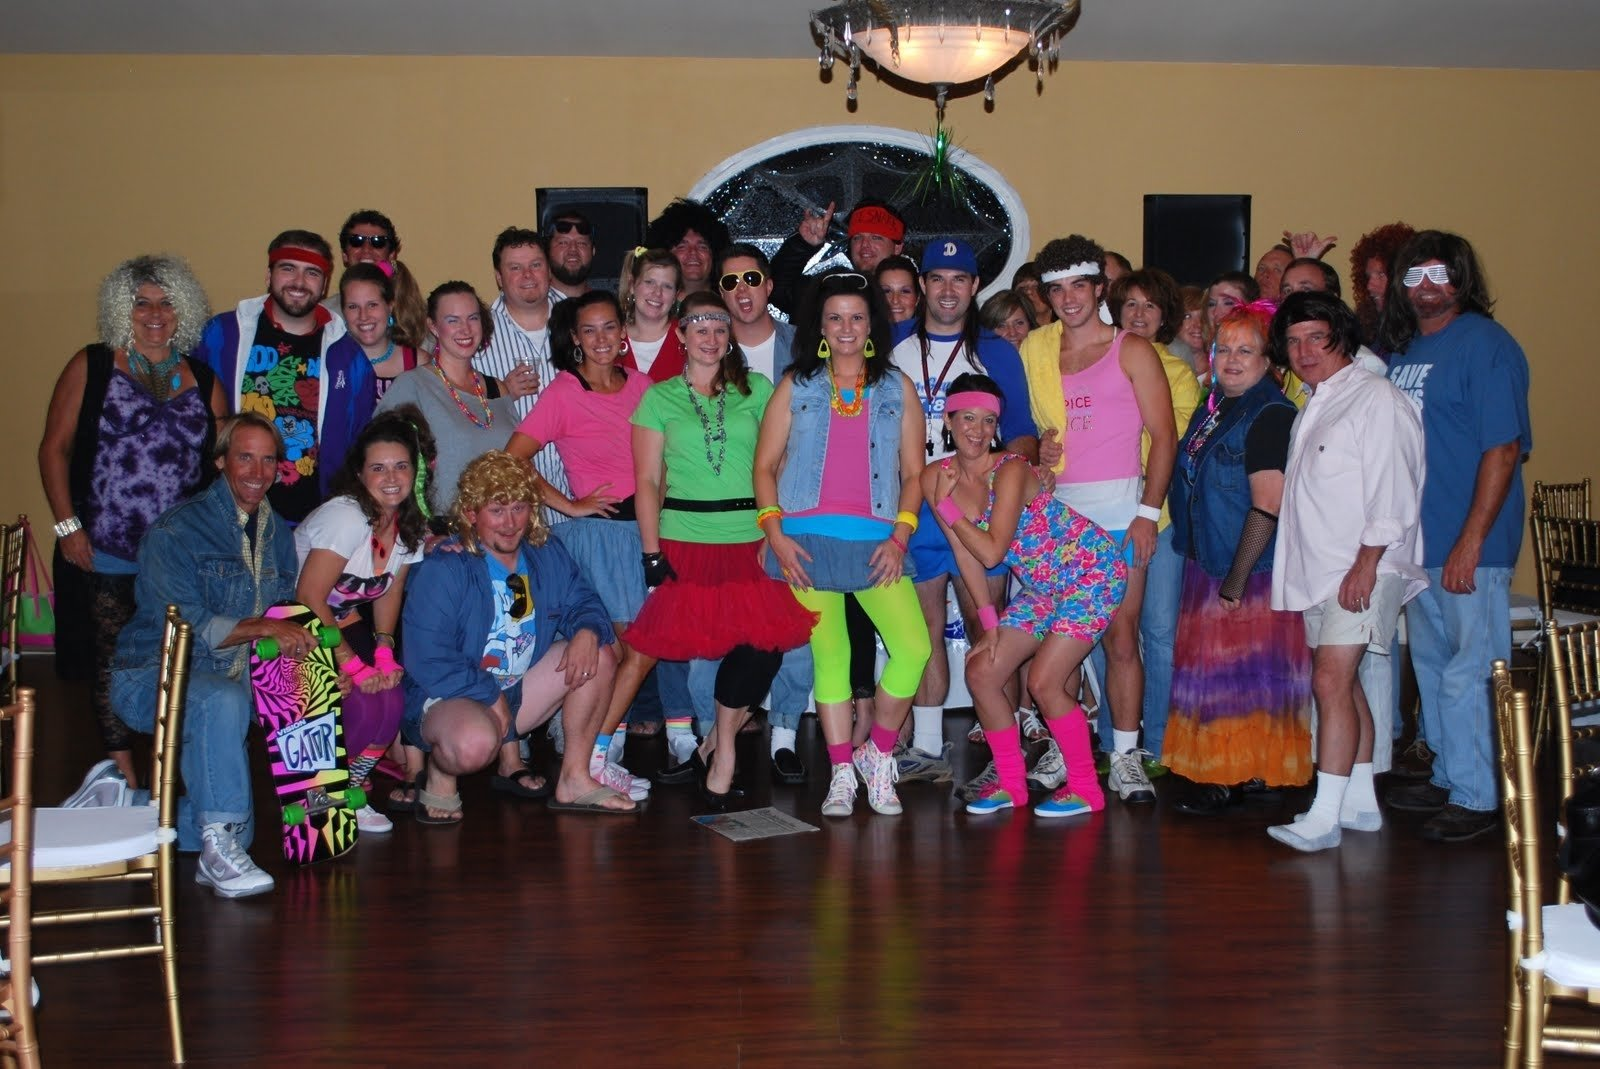 1980s theme party ideas | keeping up with the joneses | rosie's 80s